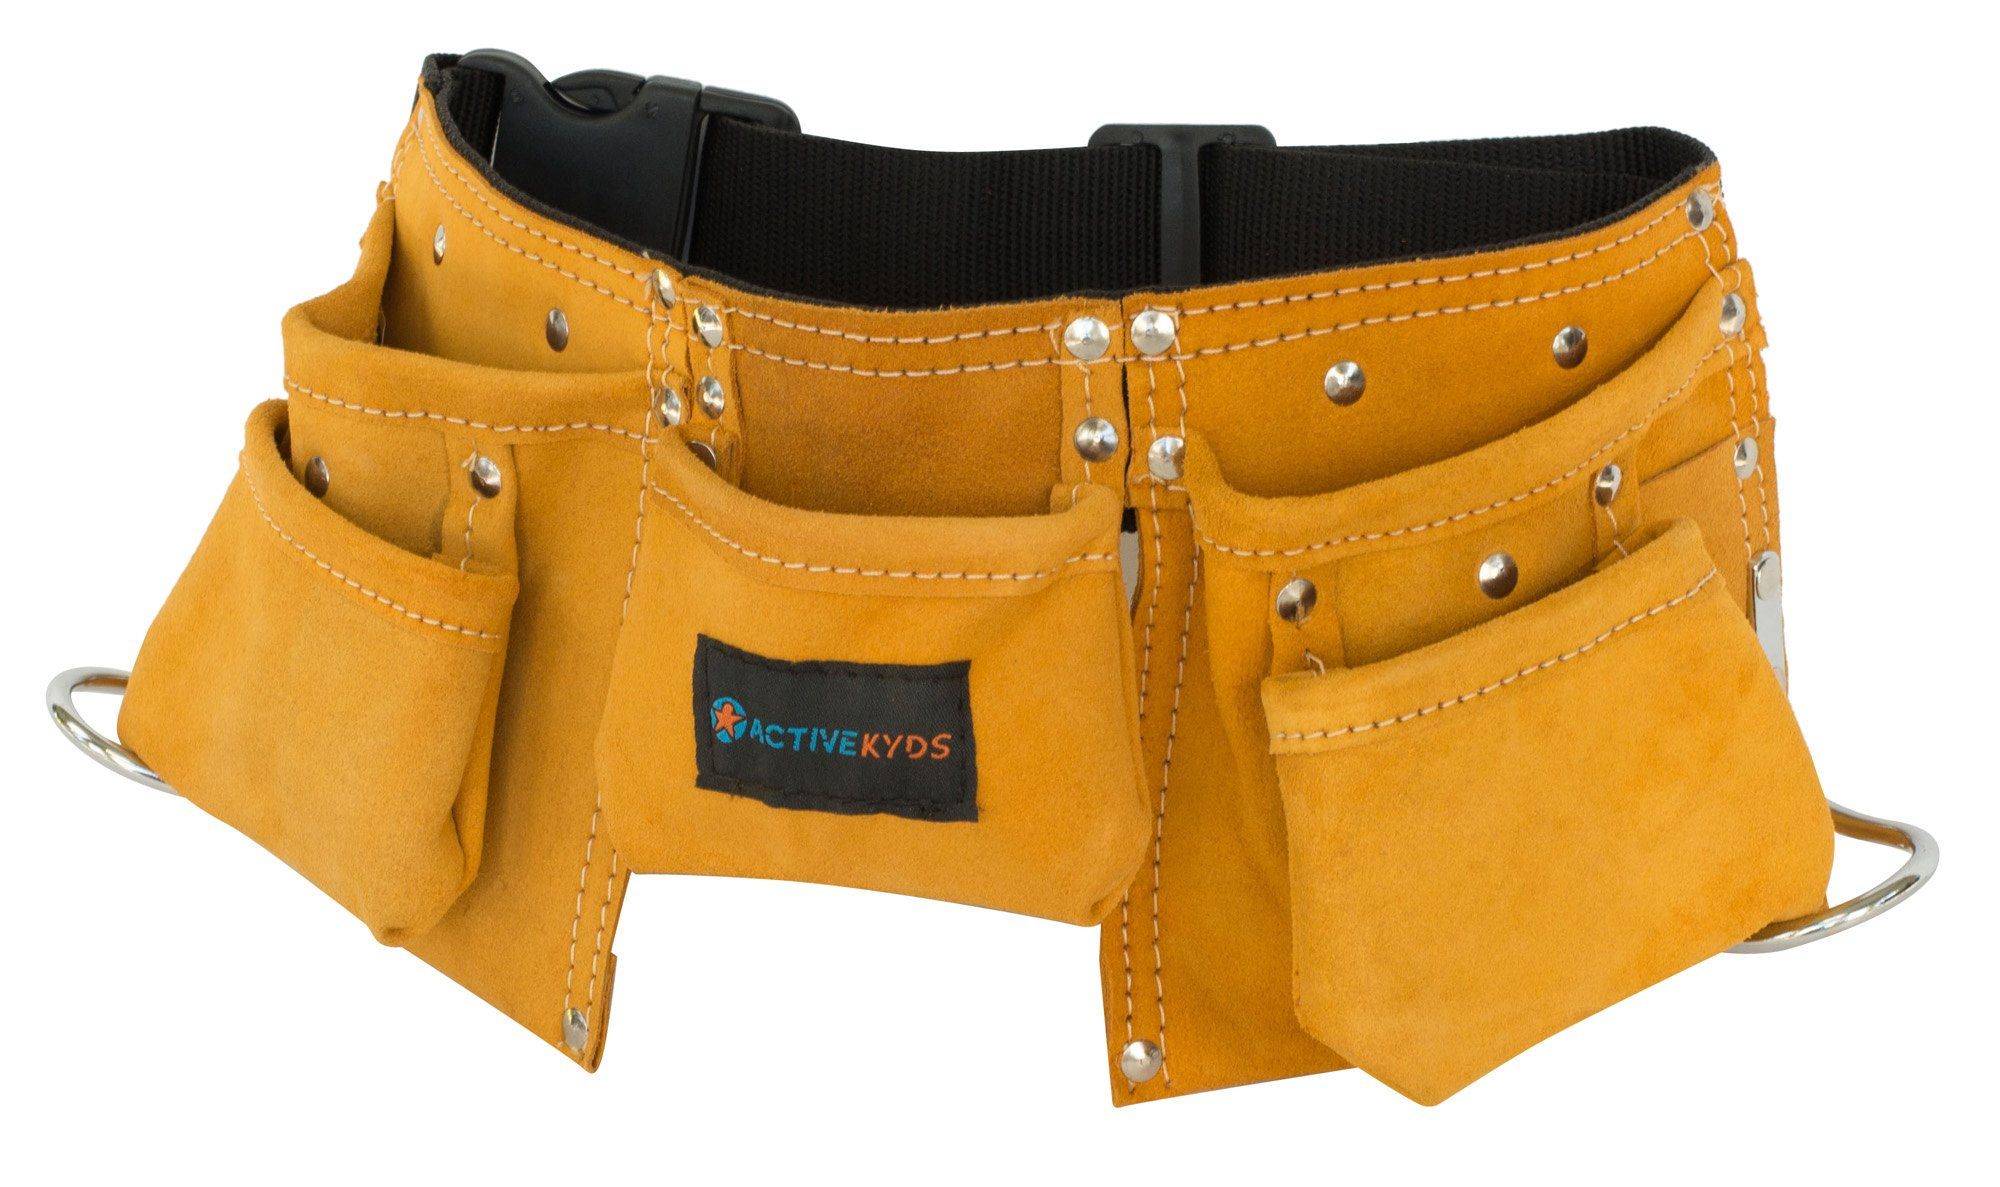 Active Kyds Real Leather Kids Tool Belt/Child's Tool Pouch for Costumes Dress Up Role Play (Brown) by Active Kyds